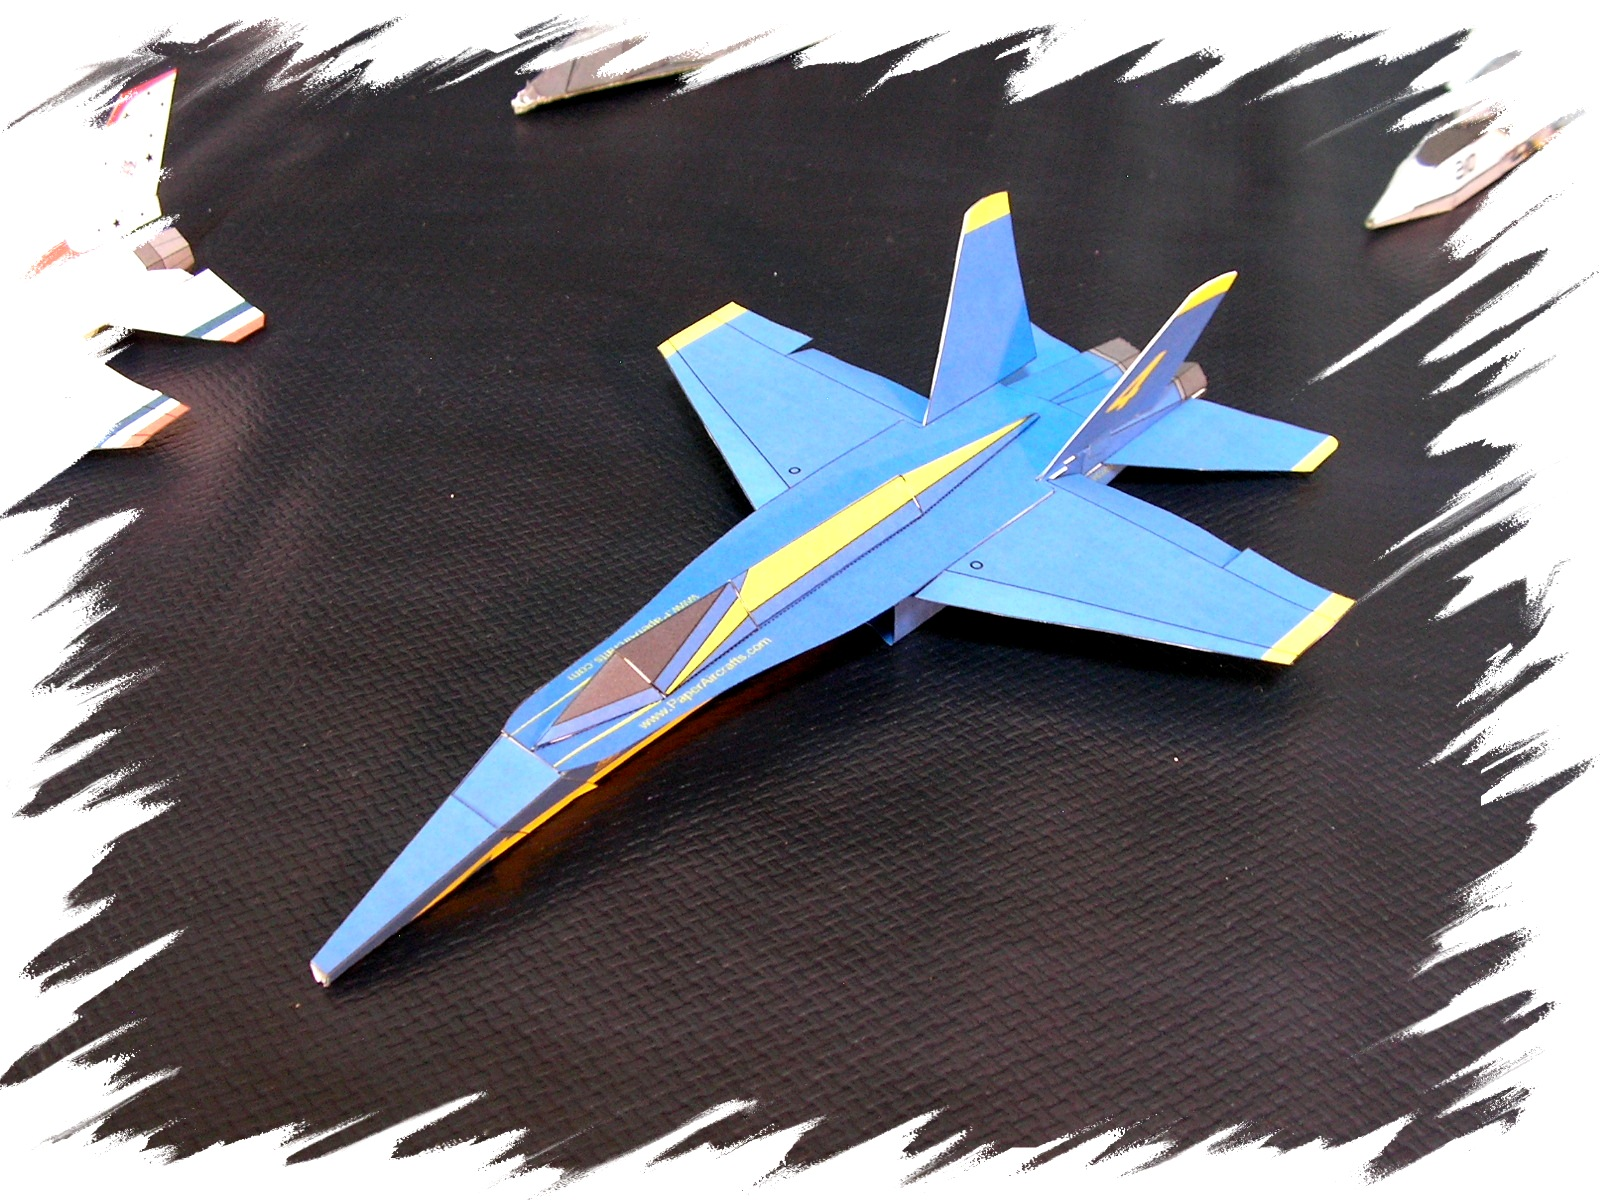 Flyable Modern Jets Realistic 3d Paper Airplane Models